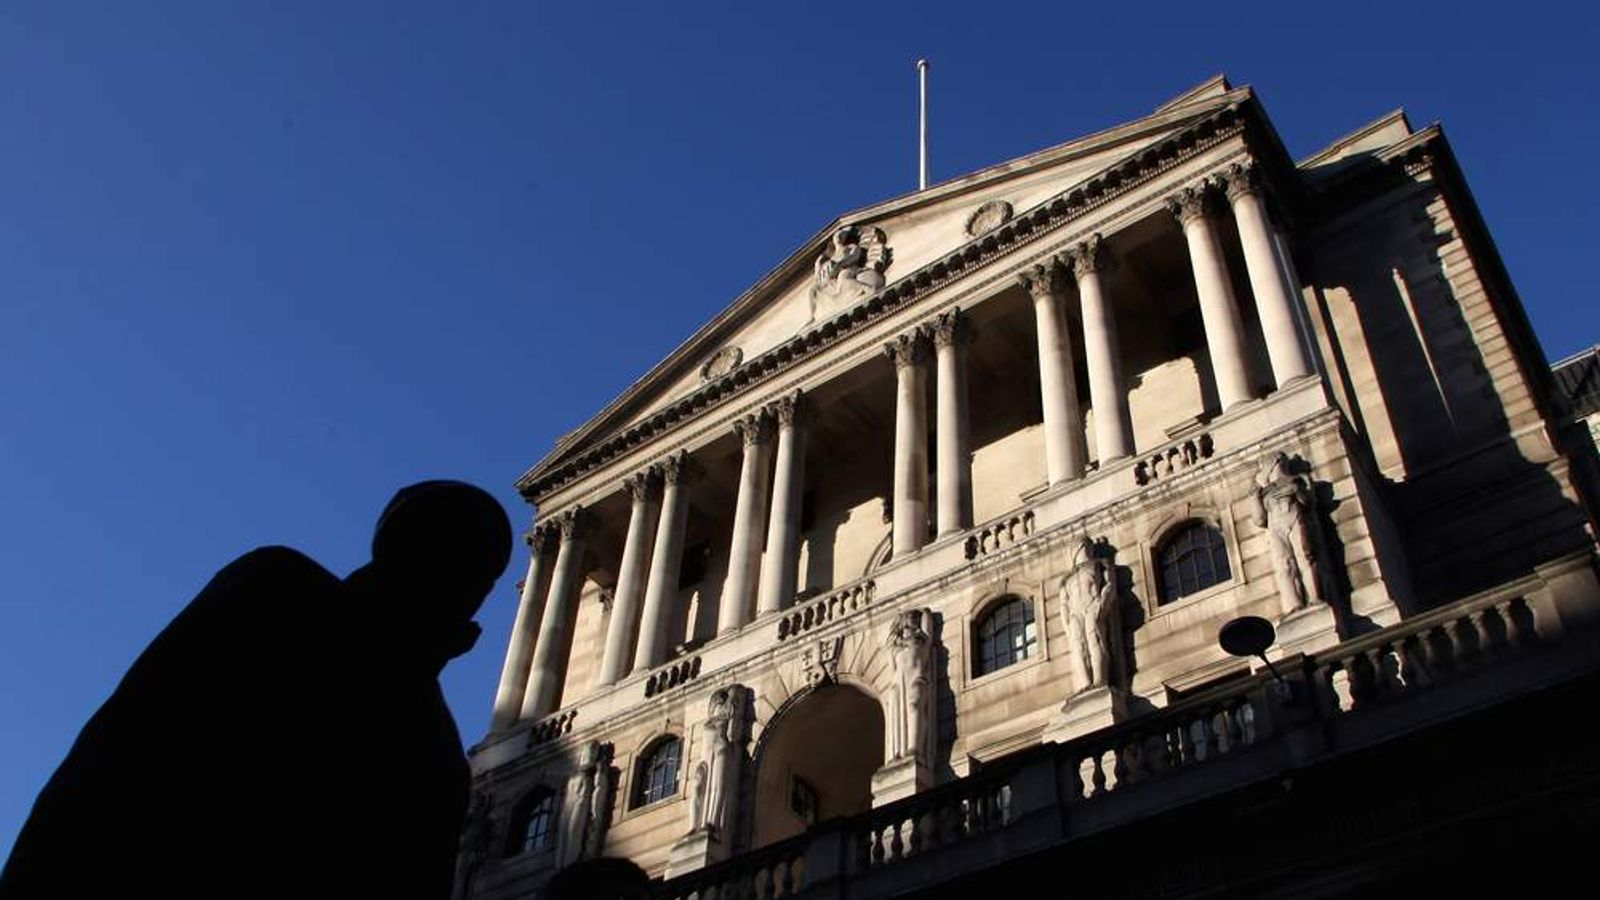 Bank of England In Sunshine